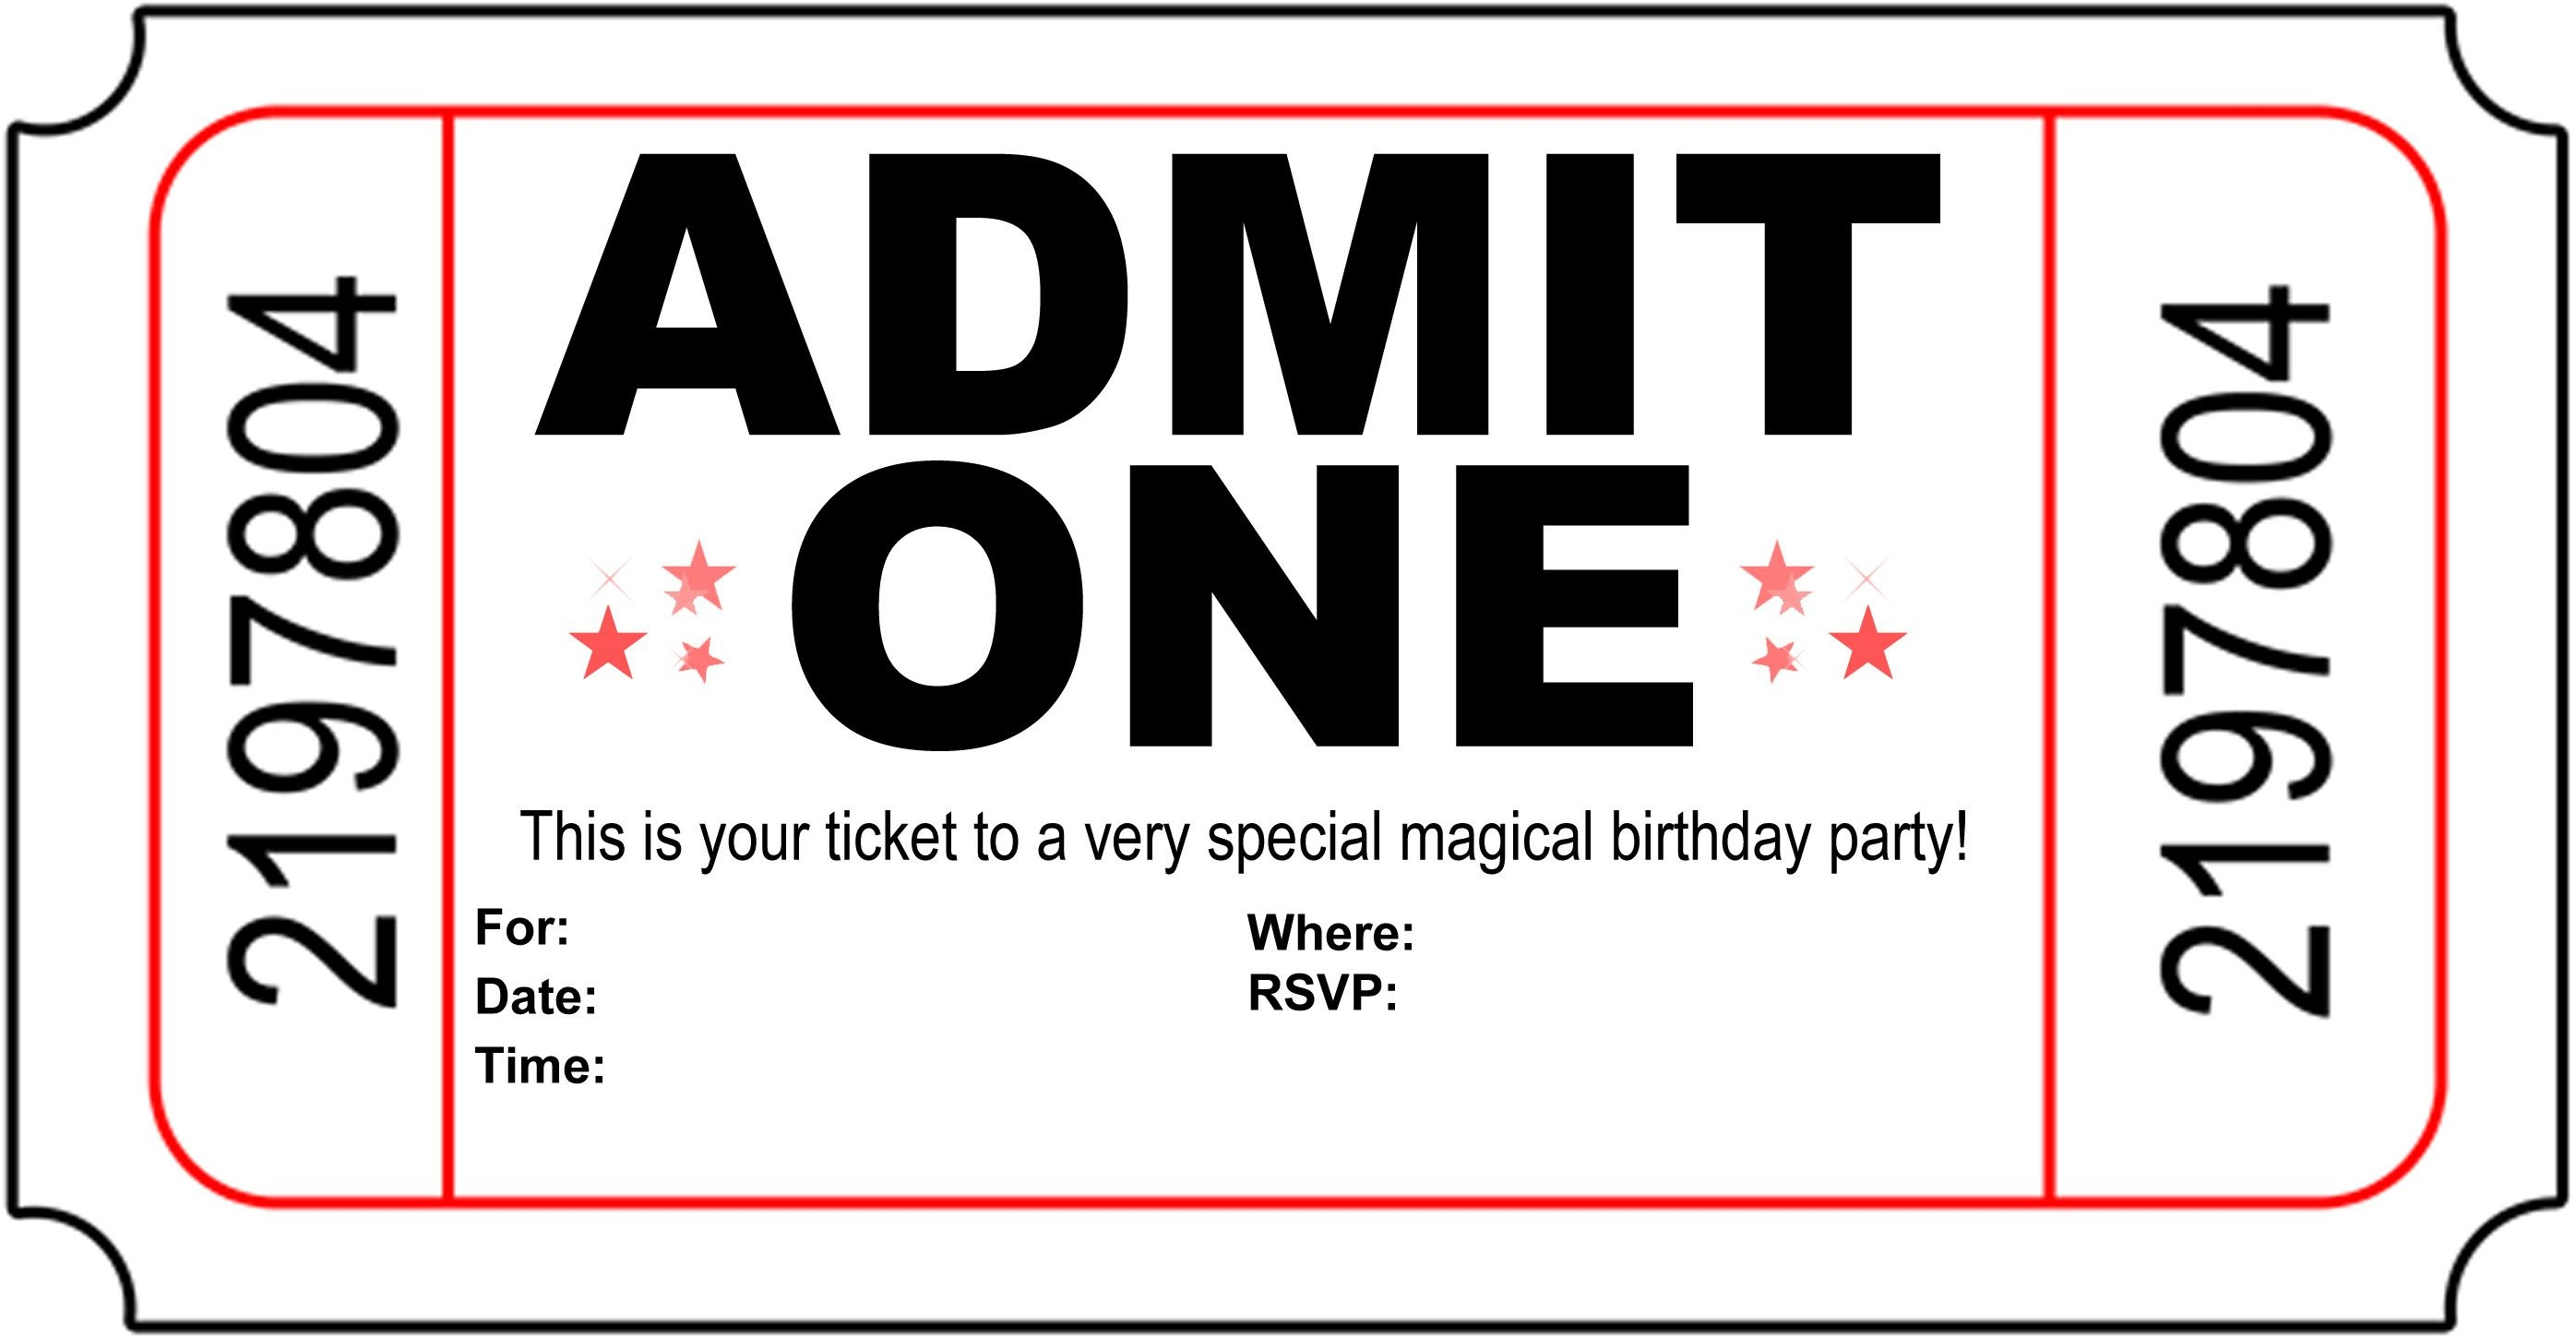 Free Printable Birthday Party Invitations - Kansas Magician | Magic - Free Printable Ticket Invitation Templates